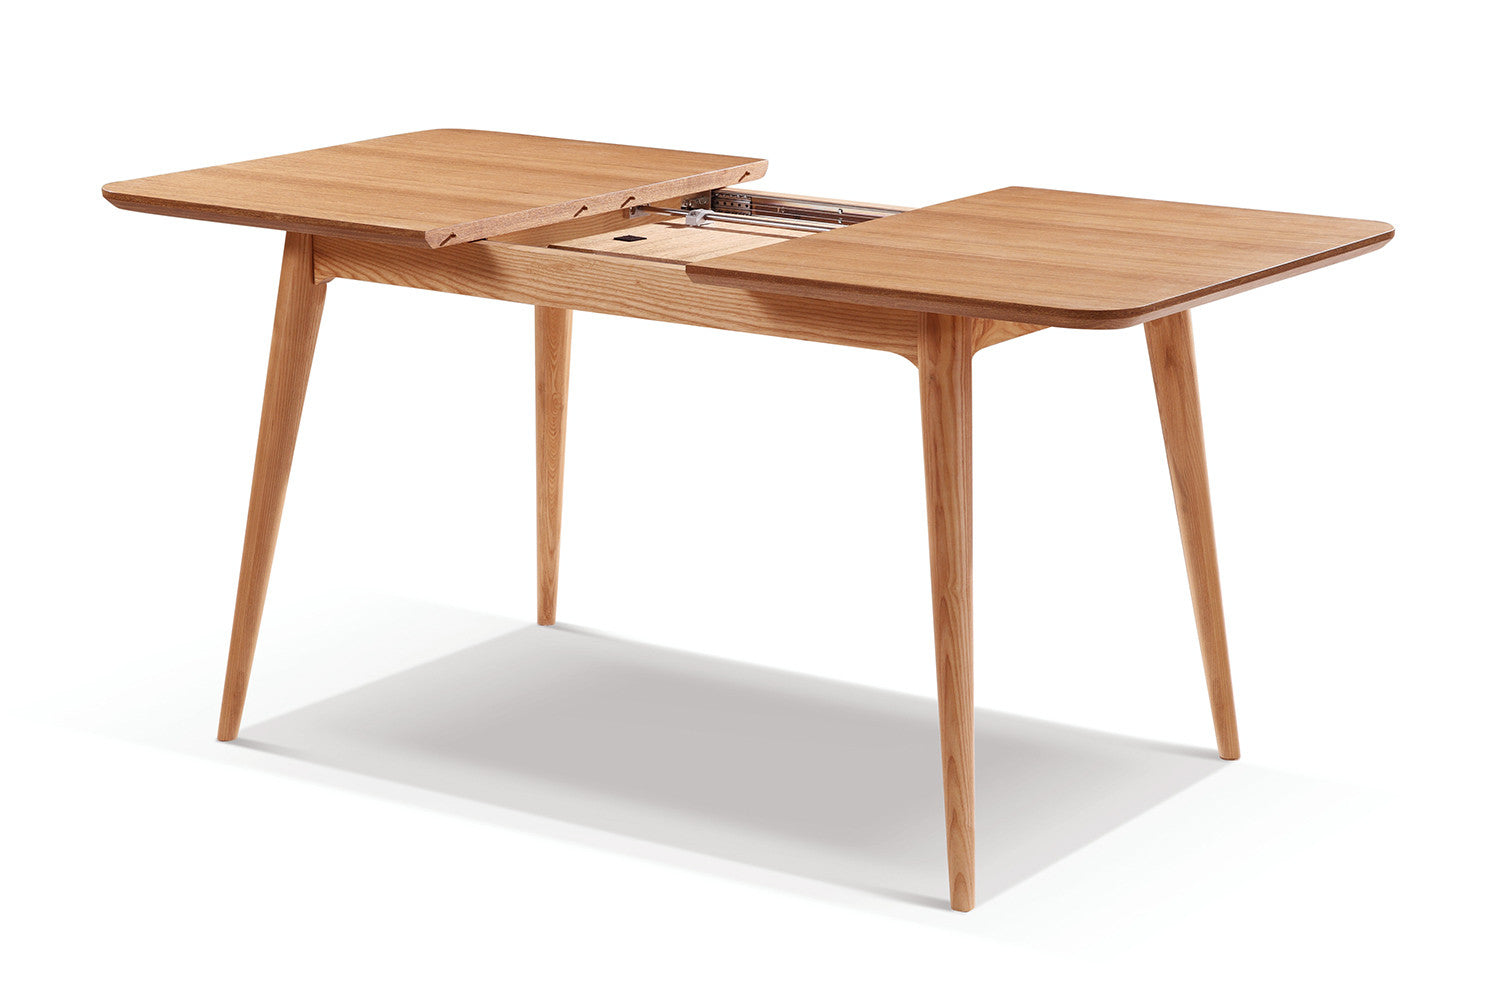 Table salle a manger extensible en bois maison design for Table salle manger zeus